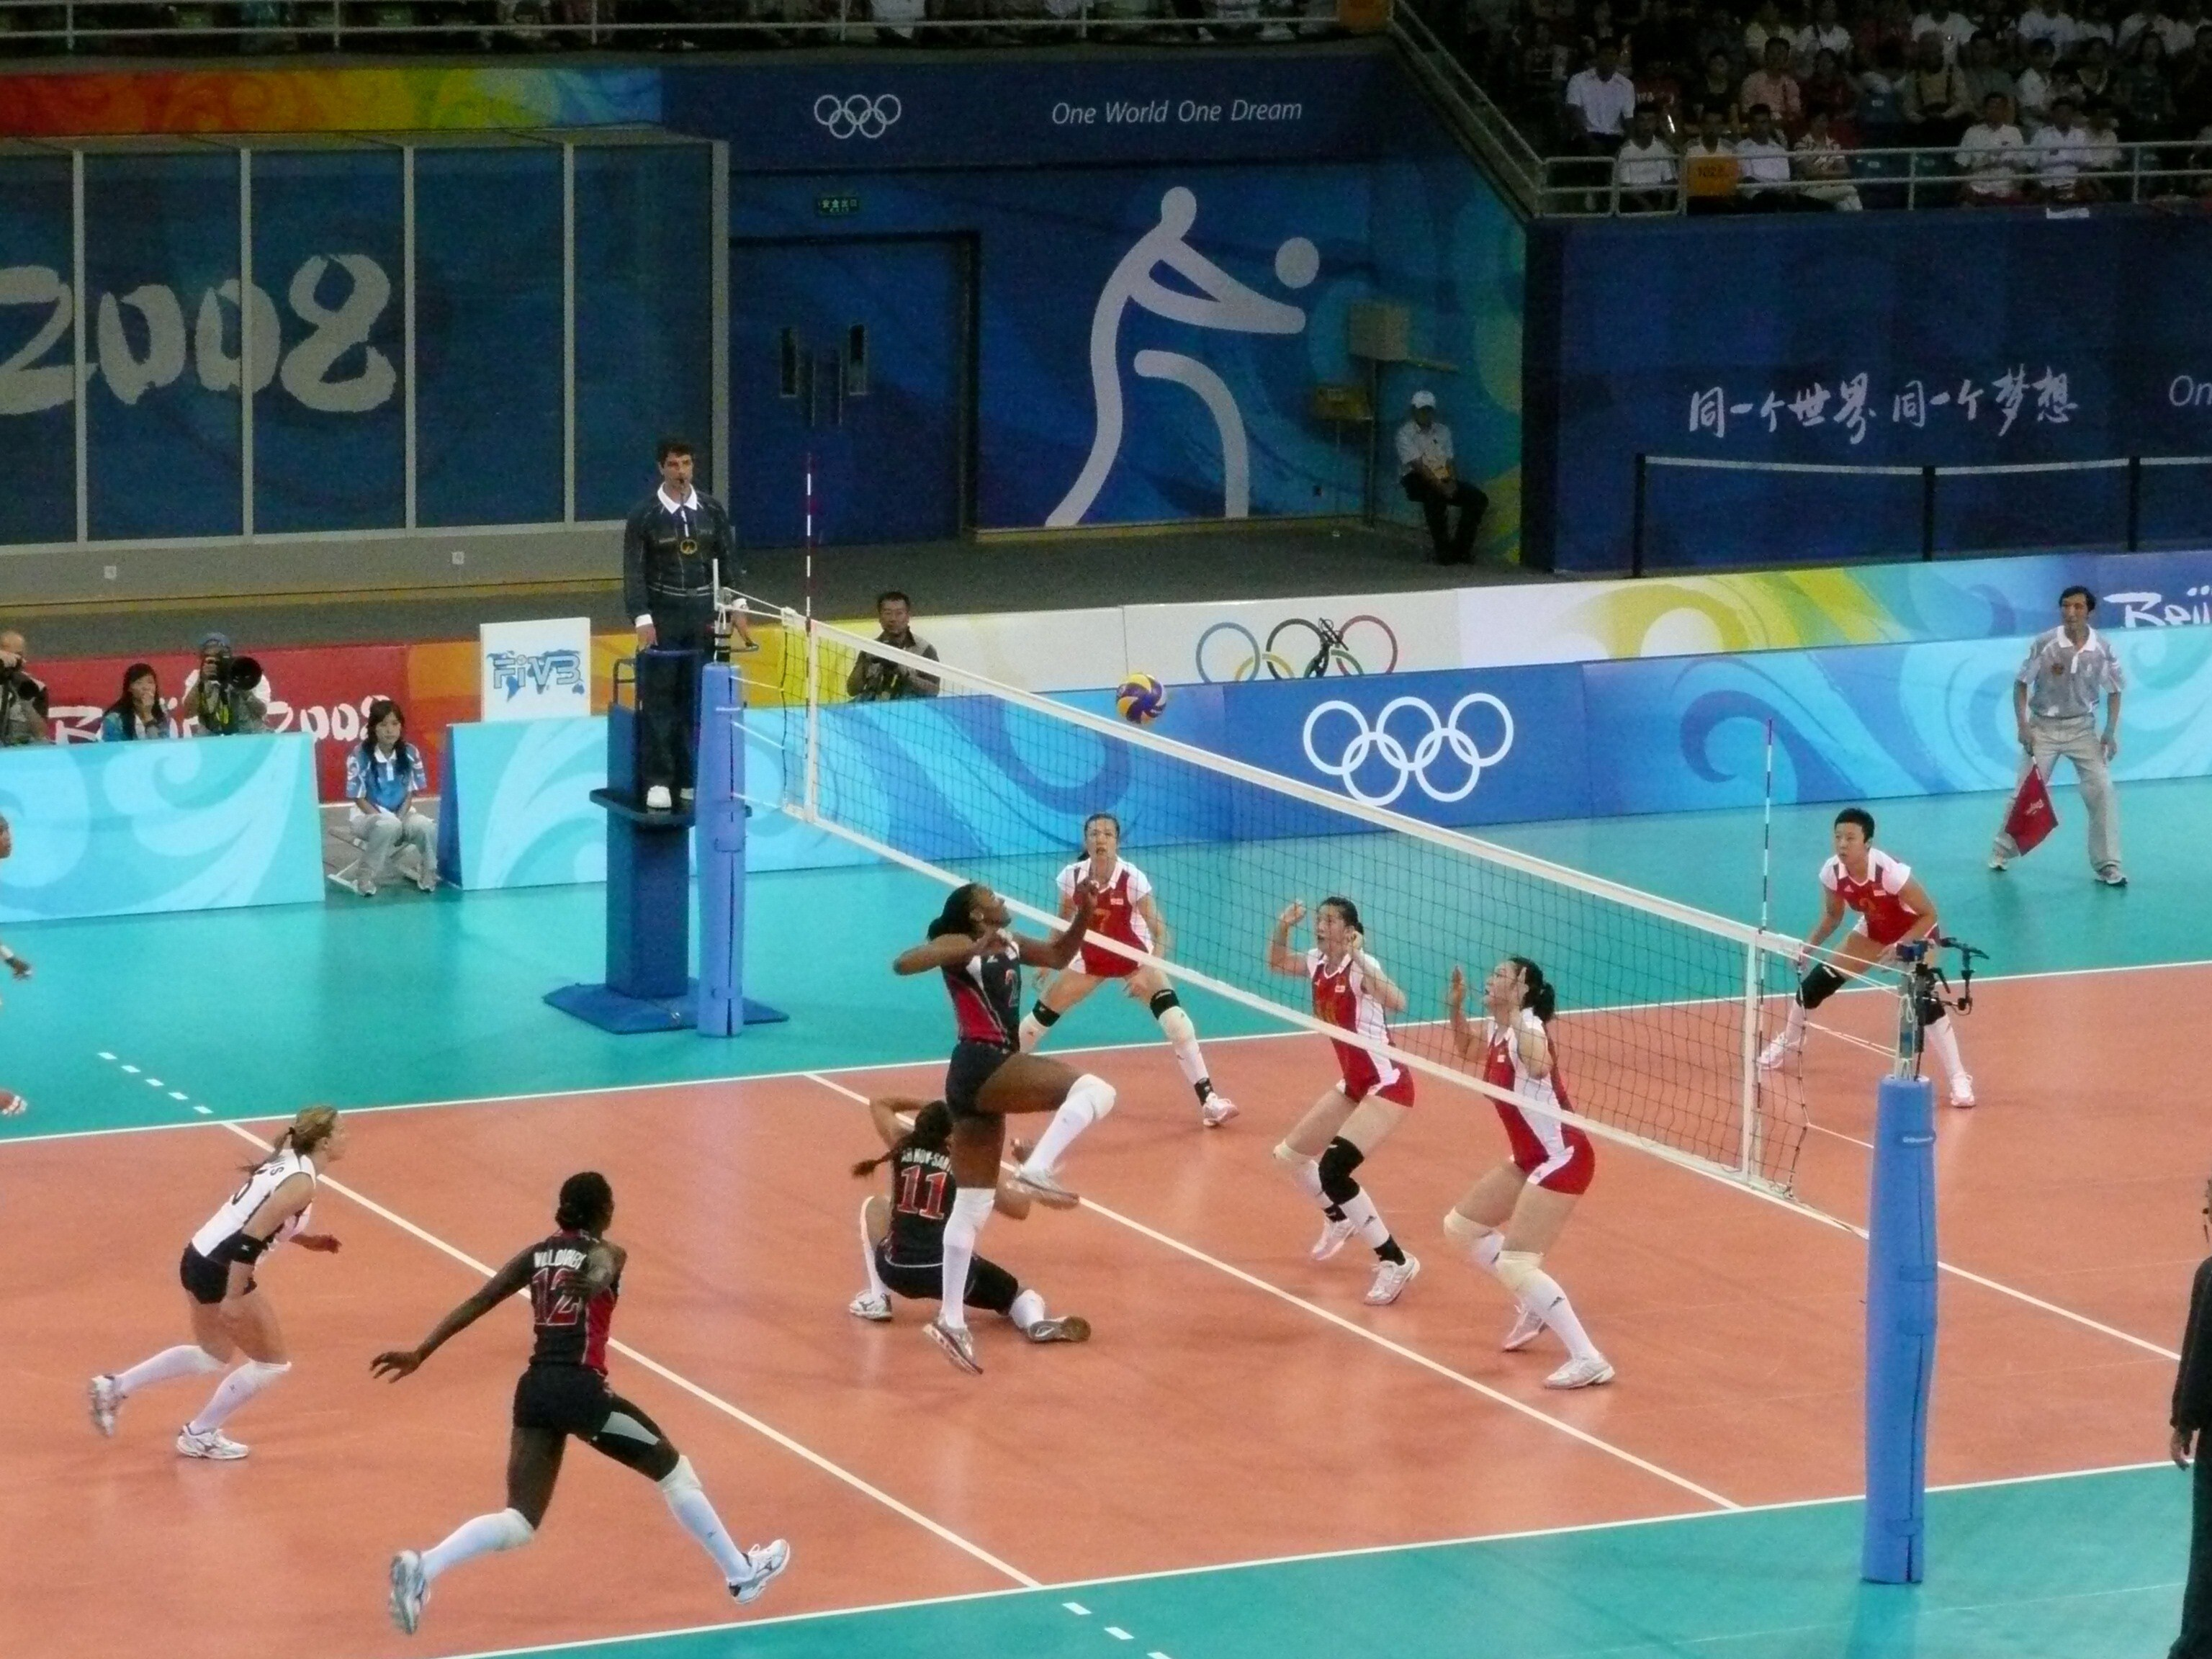 Volleyball hd wallpapers images pictures photos download free download volleyball in high definition quality wallpapers for desktop and mobiles in hd wide 4k and 5k resolutions voltagebd Images